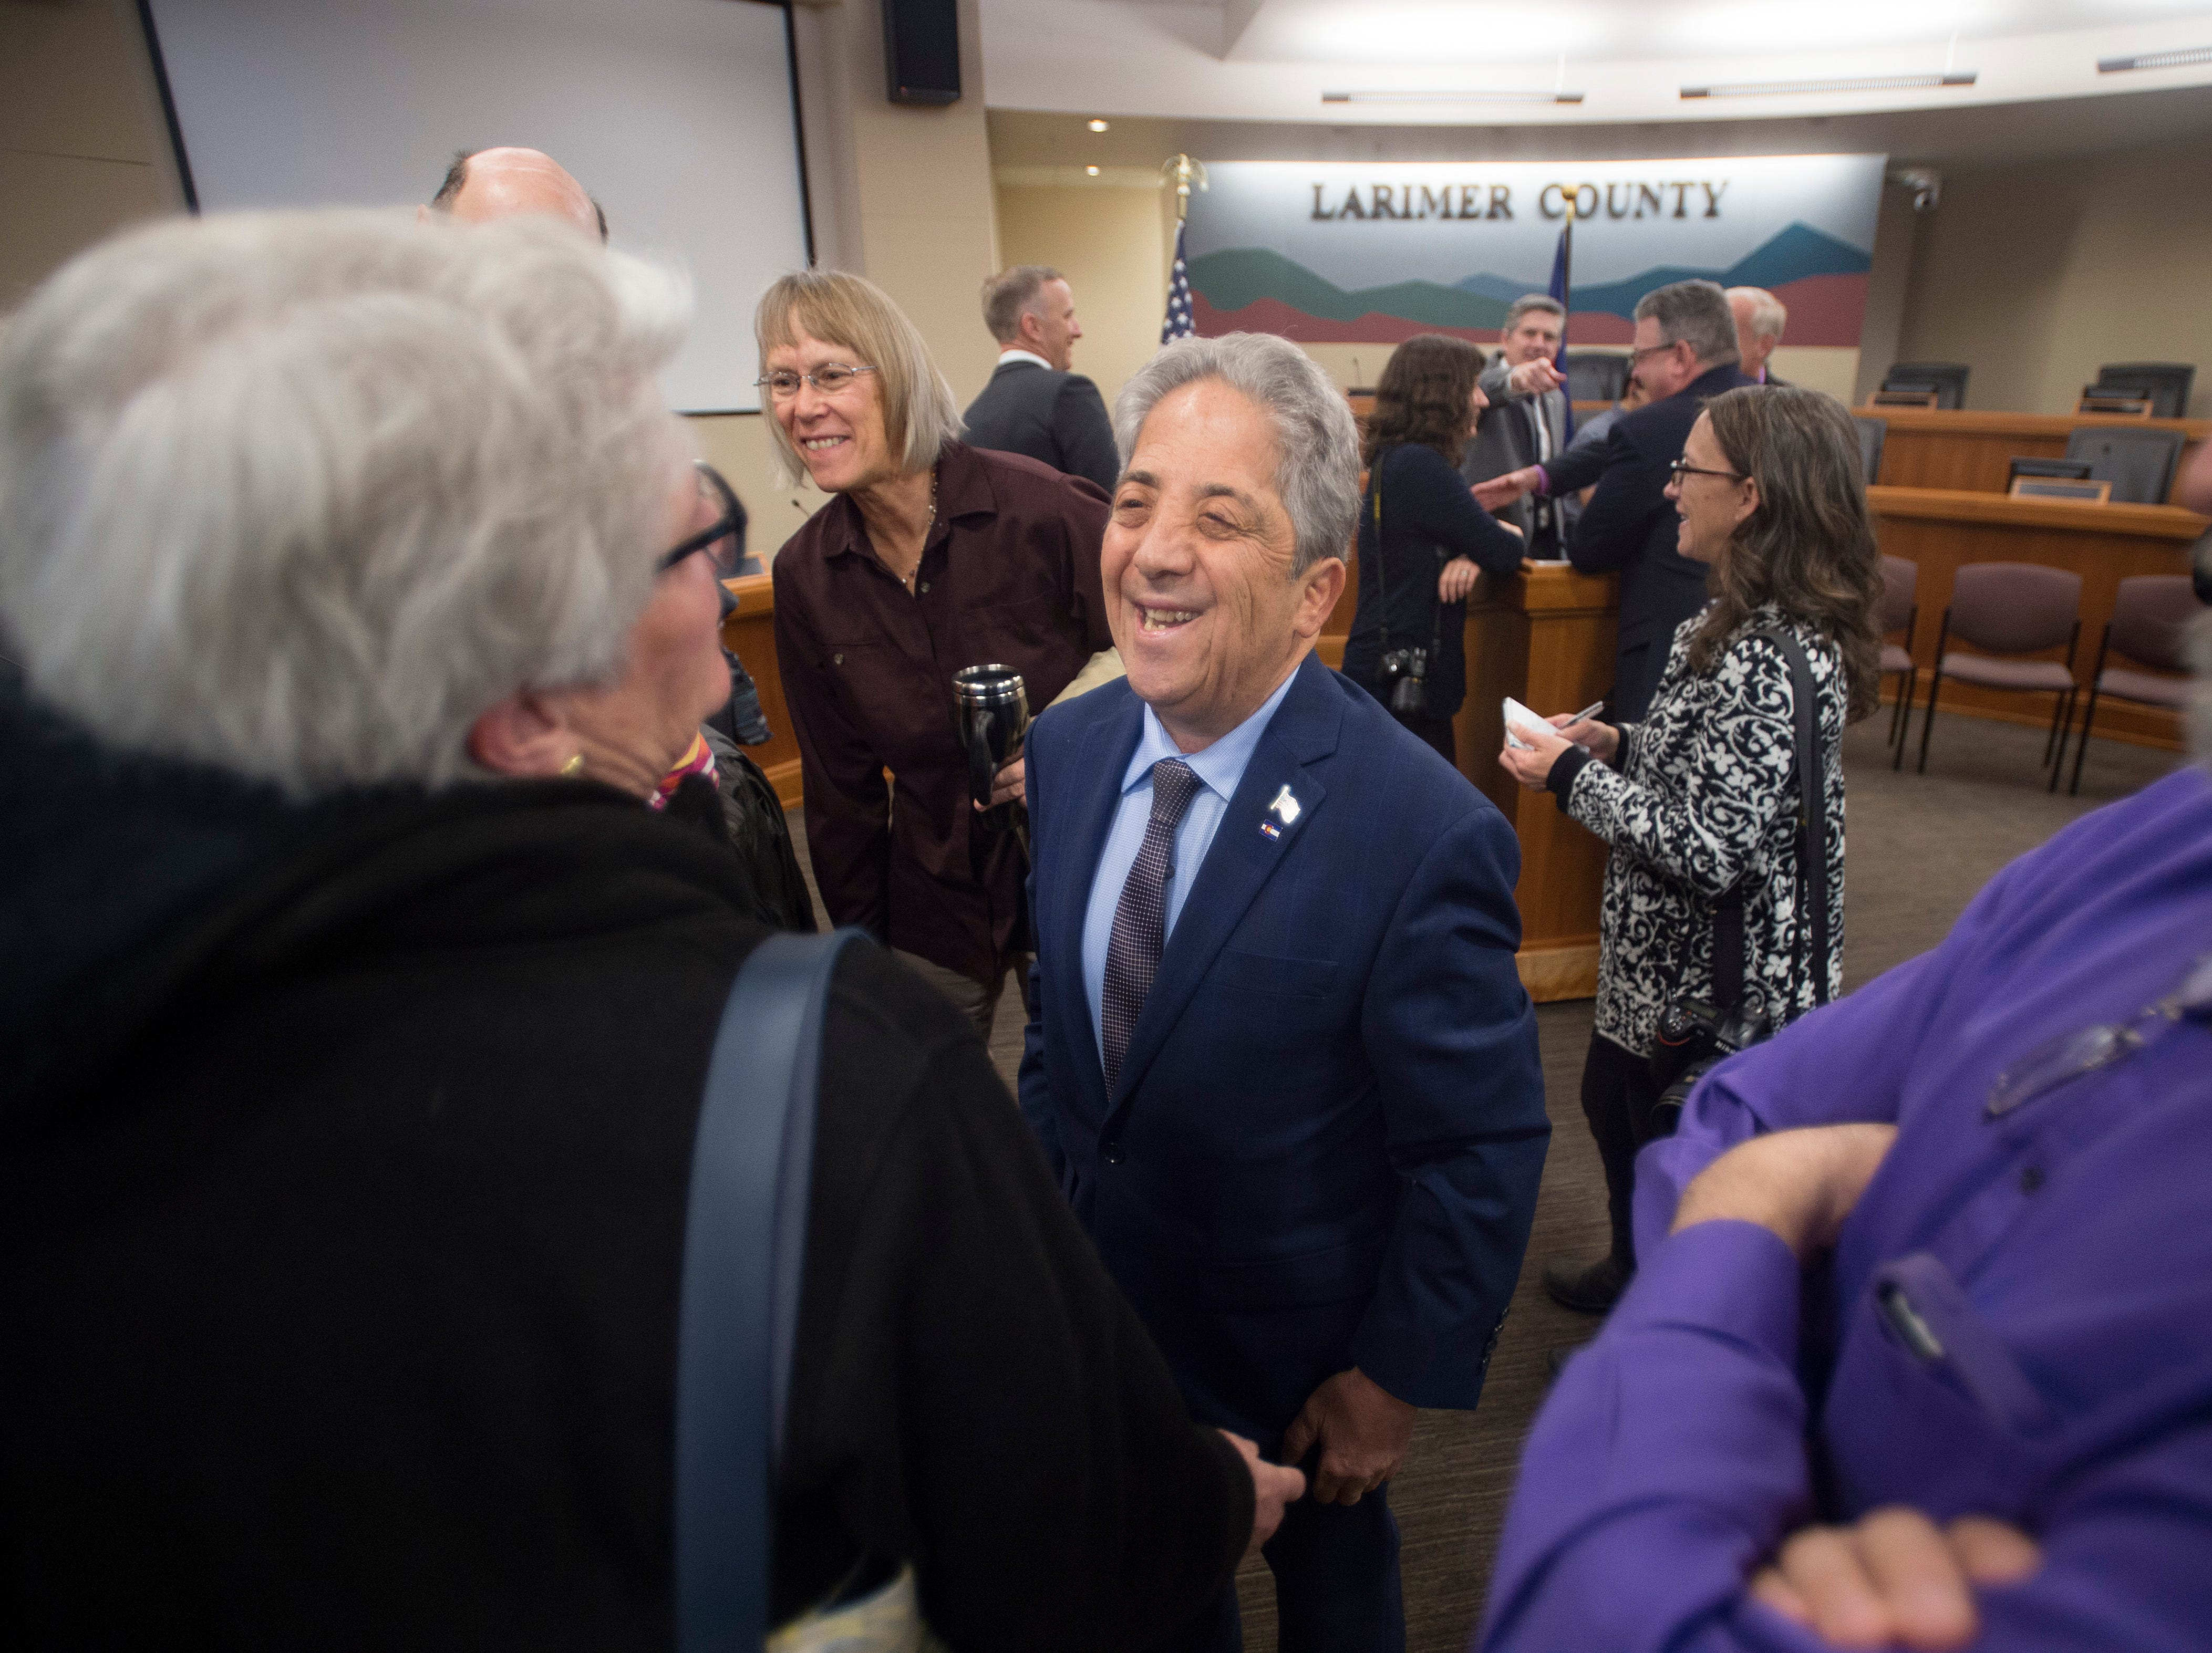 Larimer County Commissioner John Kefalas talks with supporters after being sworn in at Larimer County Courthouse on Tuesday, January 8, 2019.